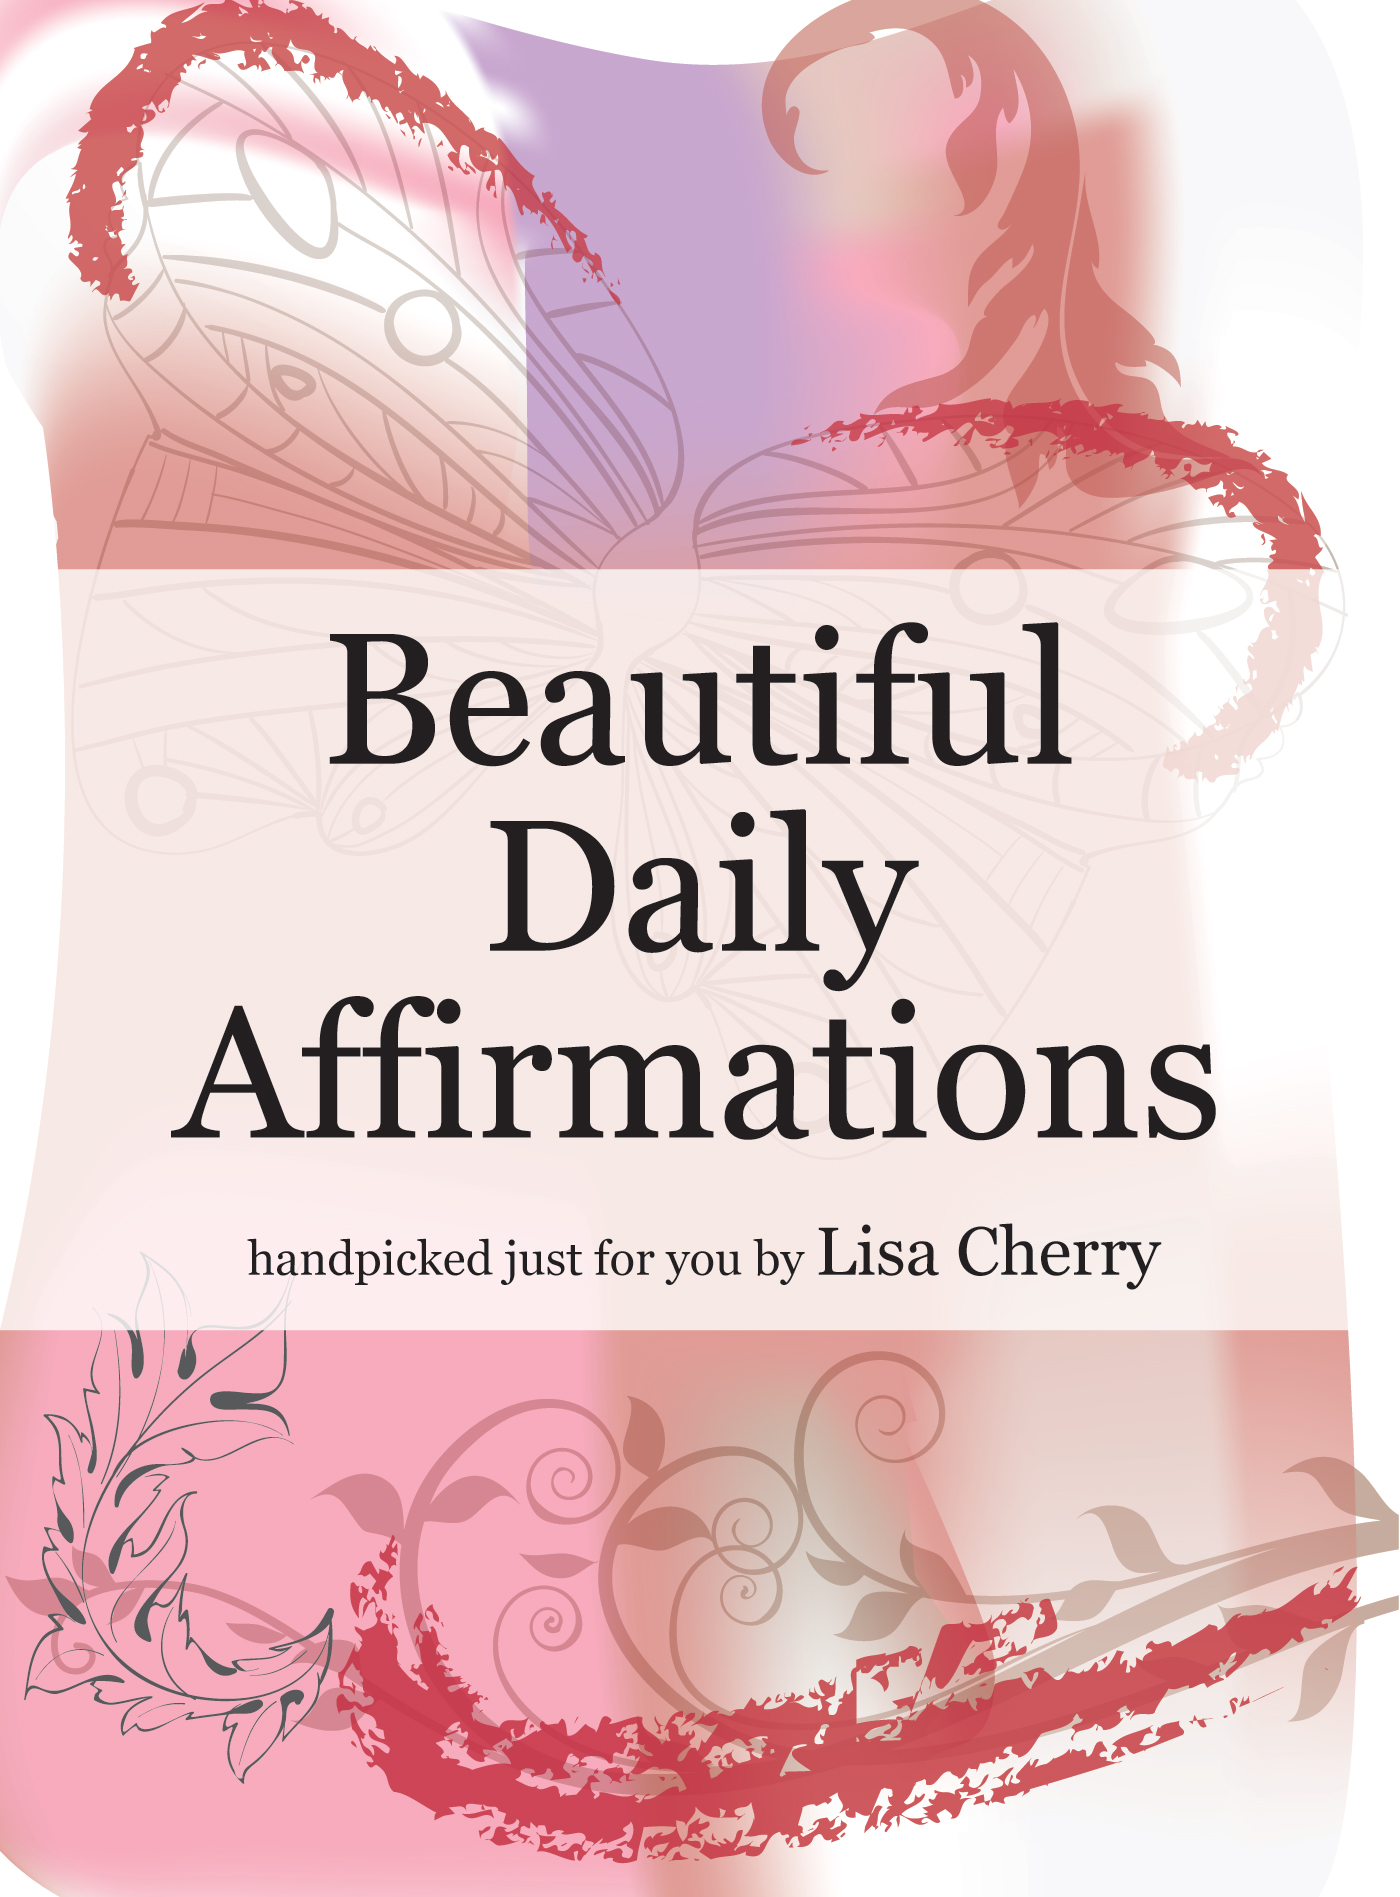 Beautiful Daily Affirmations by Lisa Cherry